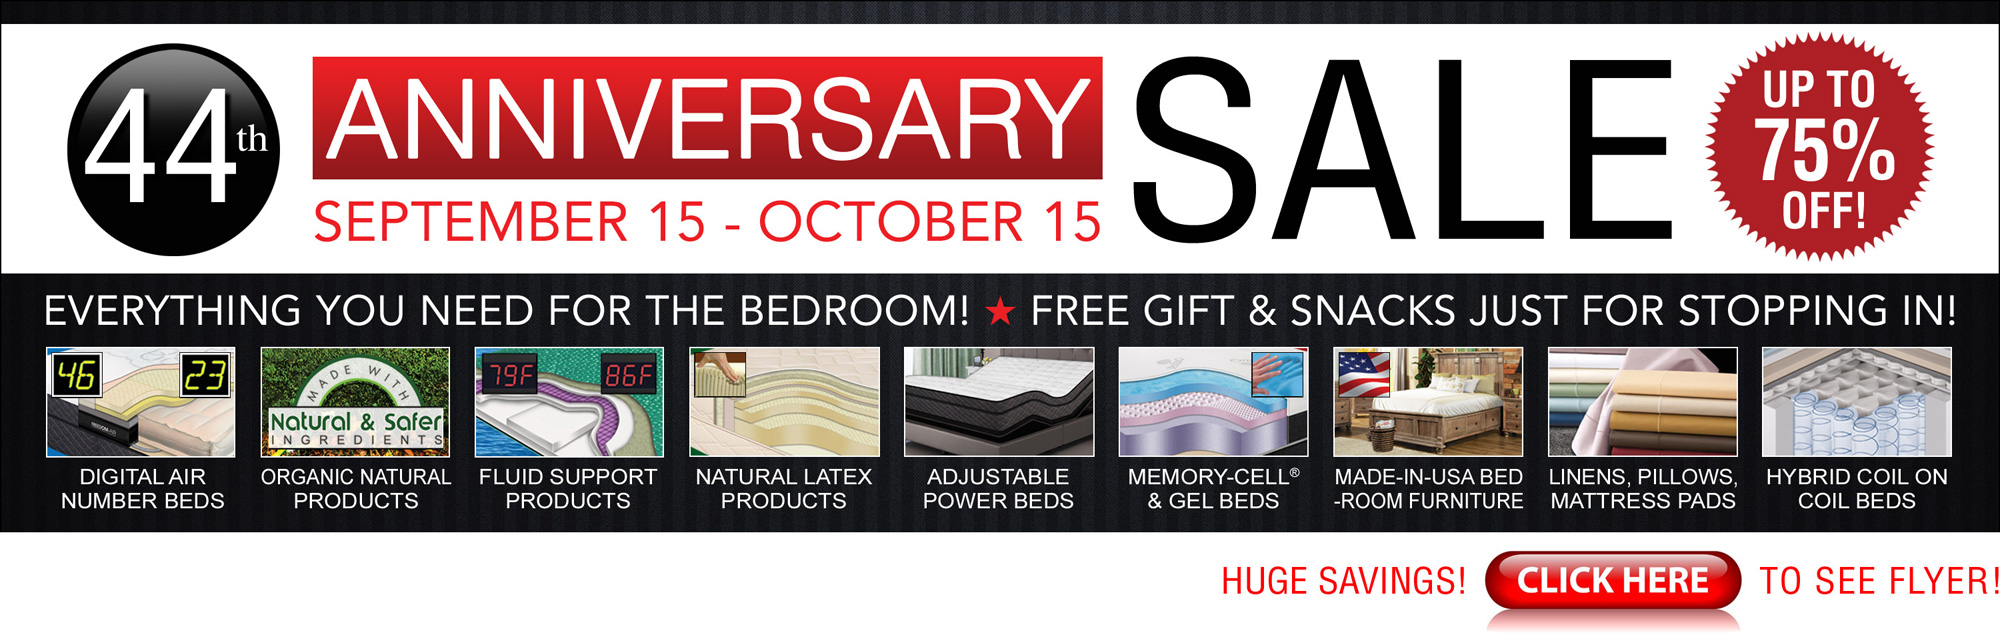 44th Anniversary Sale Going On Now!